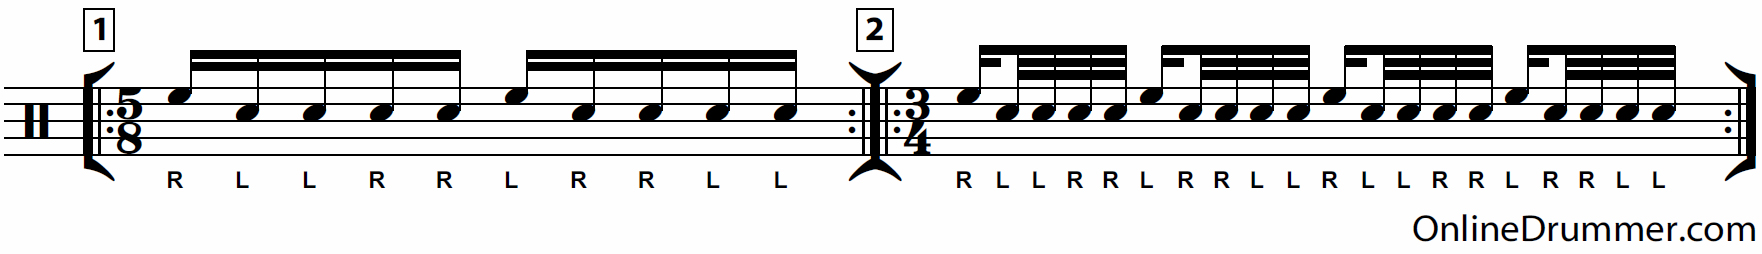 Drum-Lesson-5-Stroke-Warmup